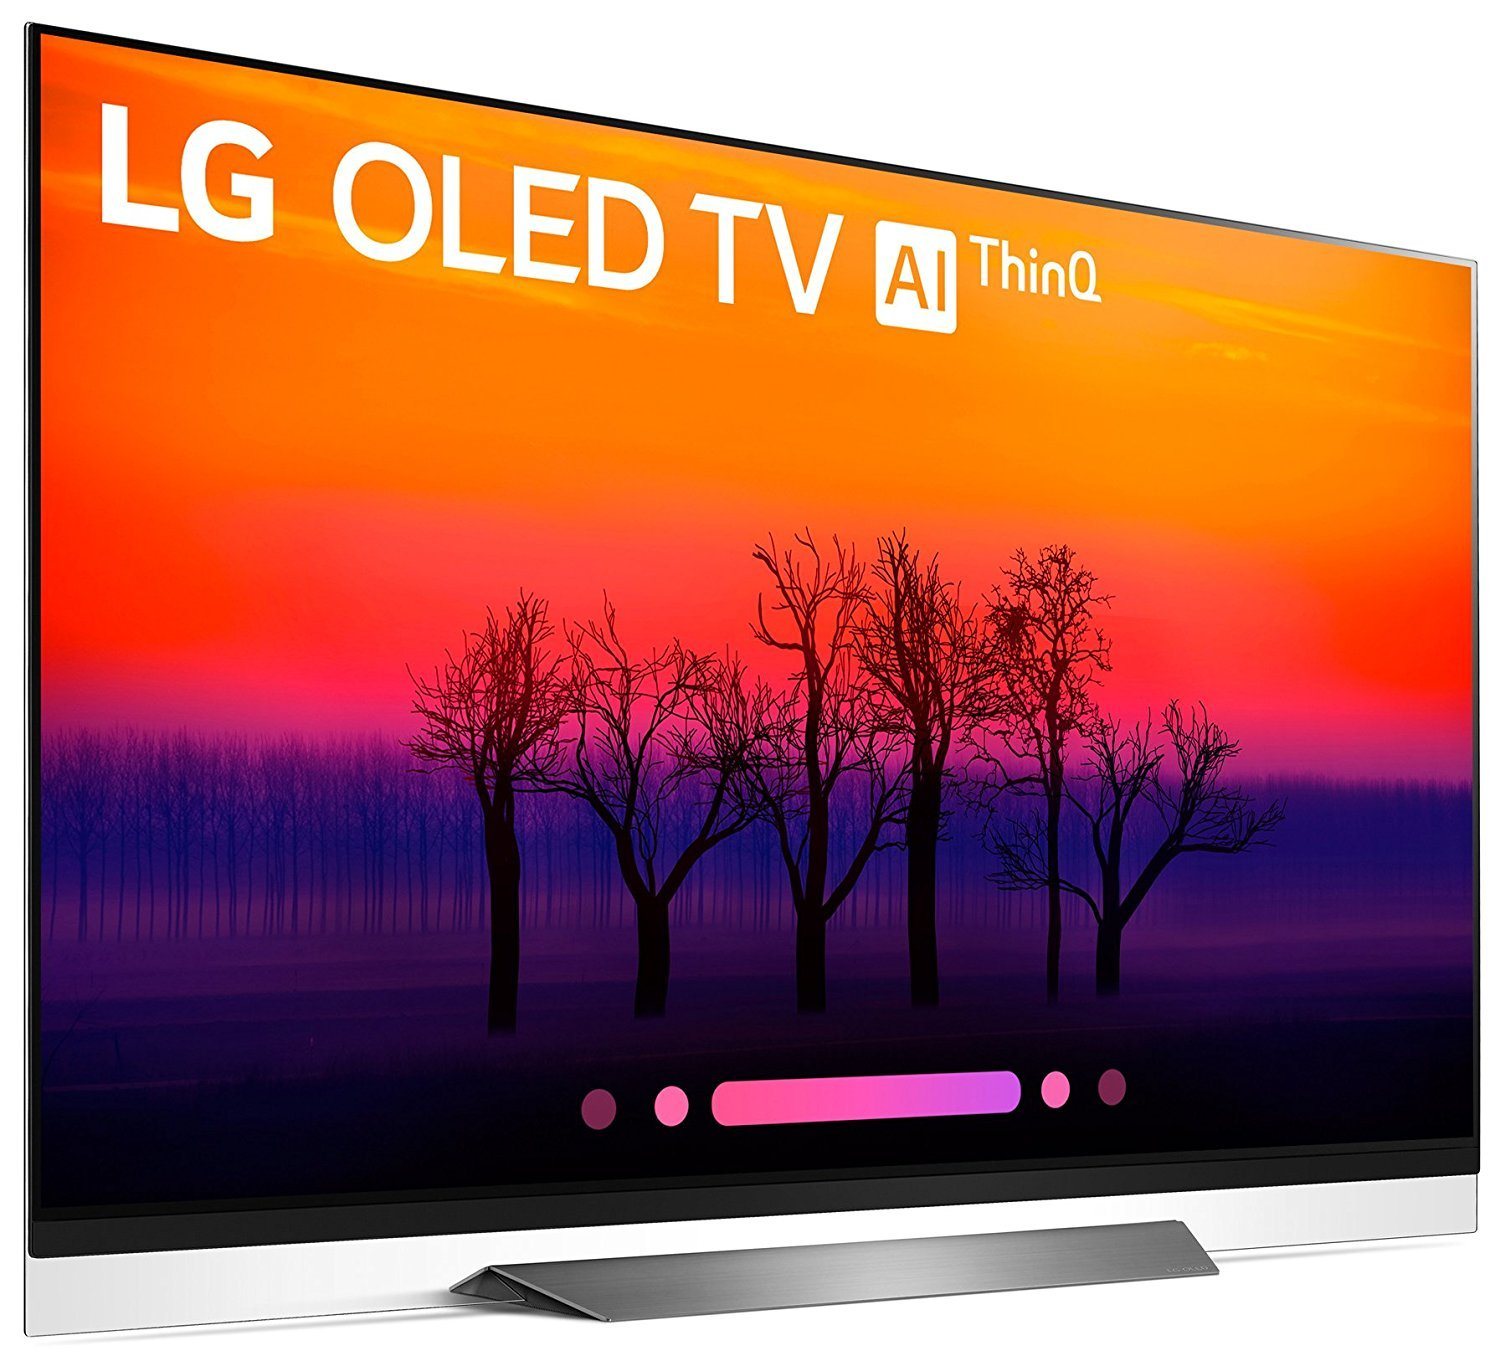 LG OLED55E8 Class E8 OLED 4K HDR AI Smart TV 2018 Model, LG SK8Y 2 1 ch  High Res Audio Sound Bar, Wall Mount, 2HDMI Cables  LG Authorized Dealer!